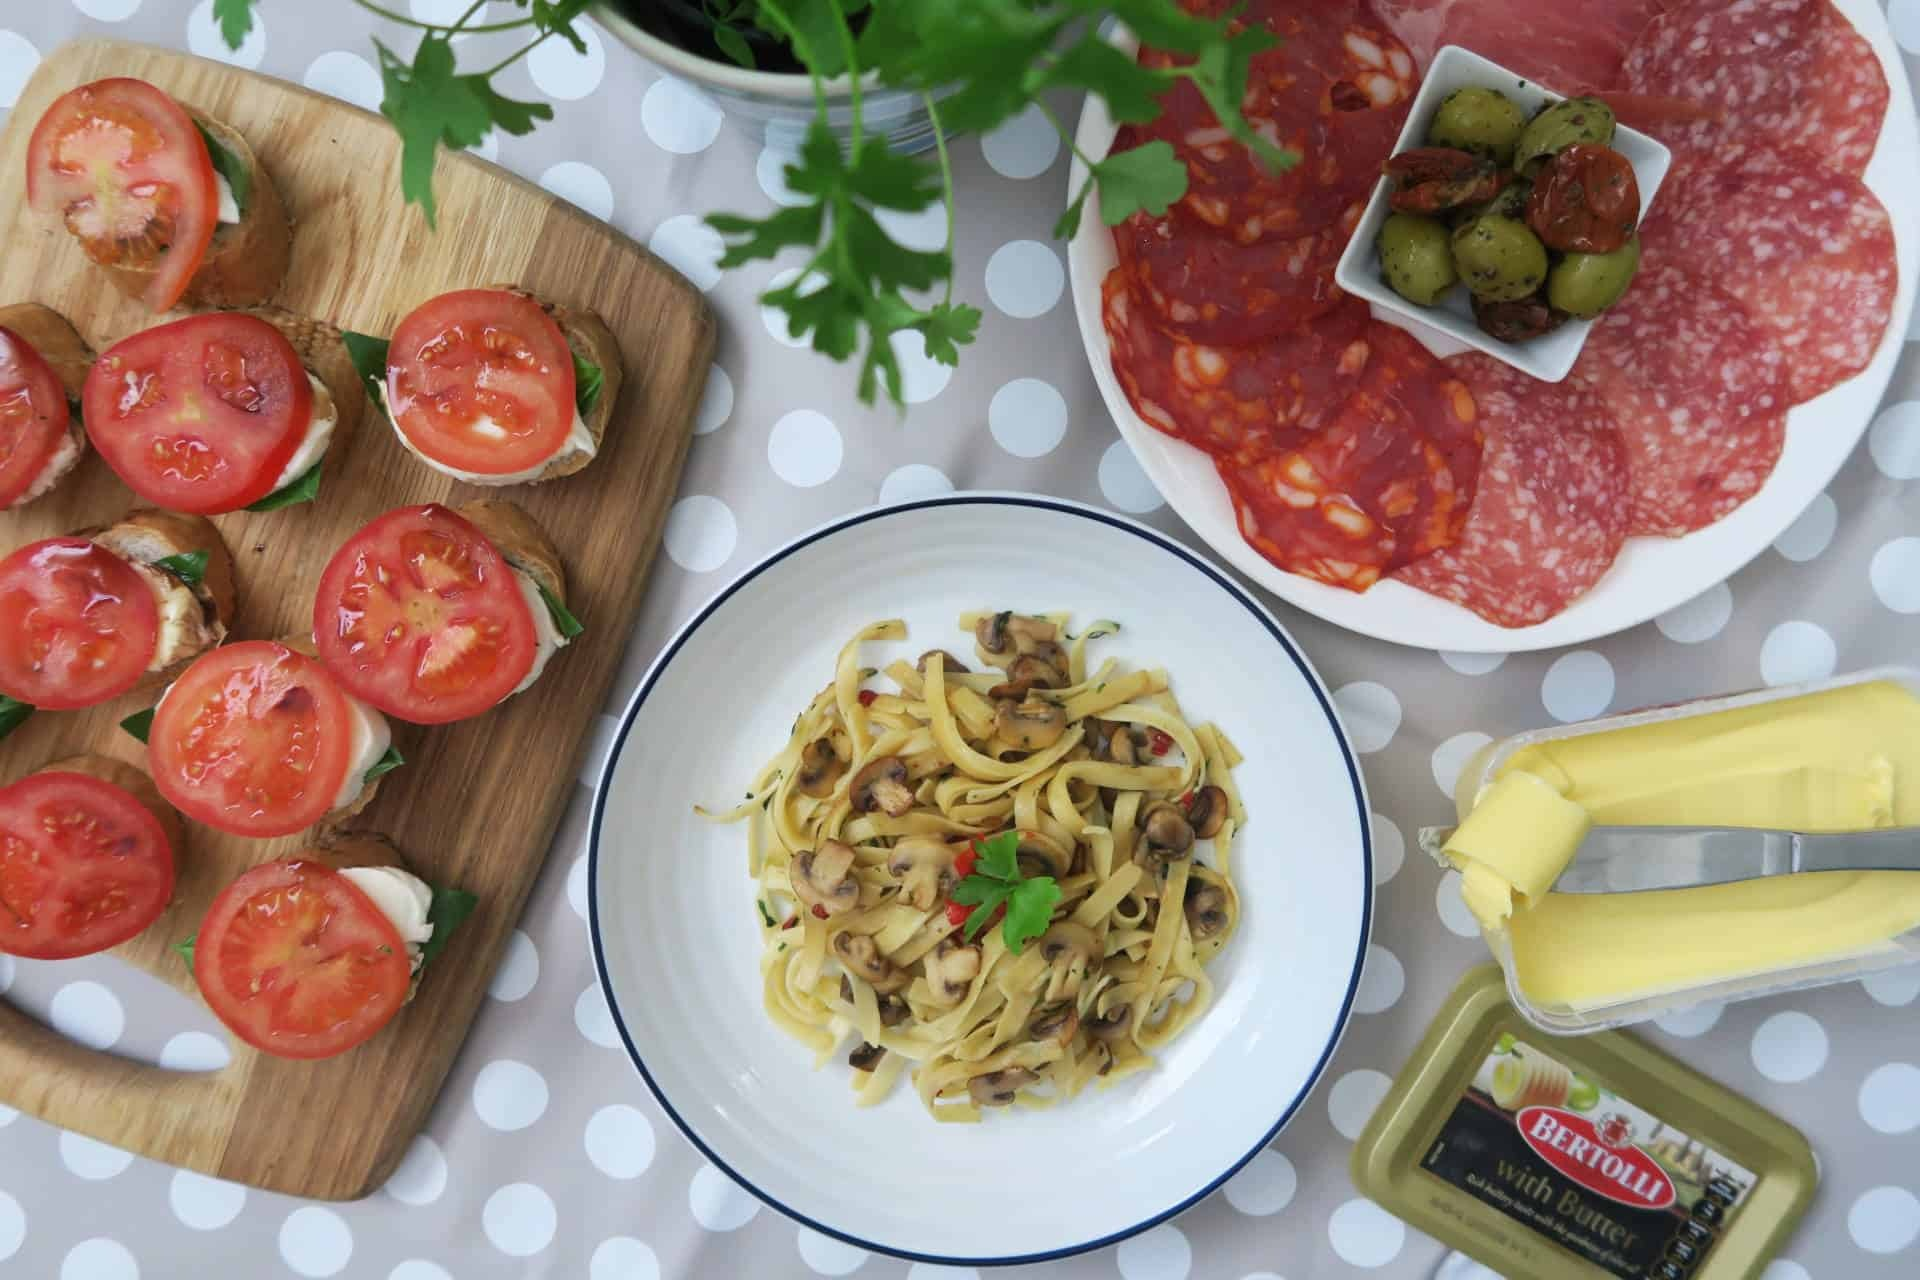 RECIPE: A Quick and Easy Gluten Free Italian Feast!